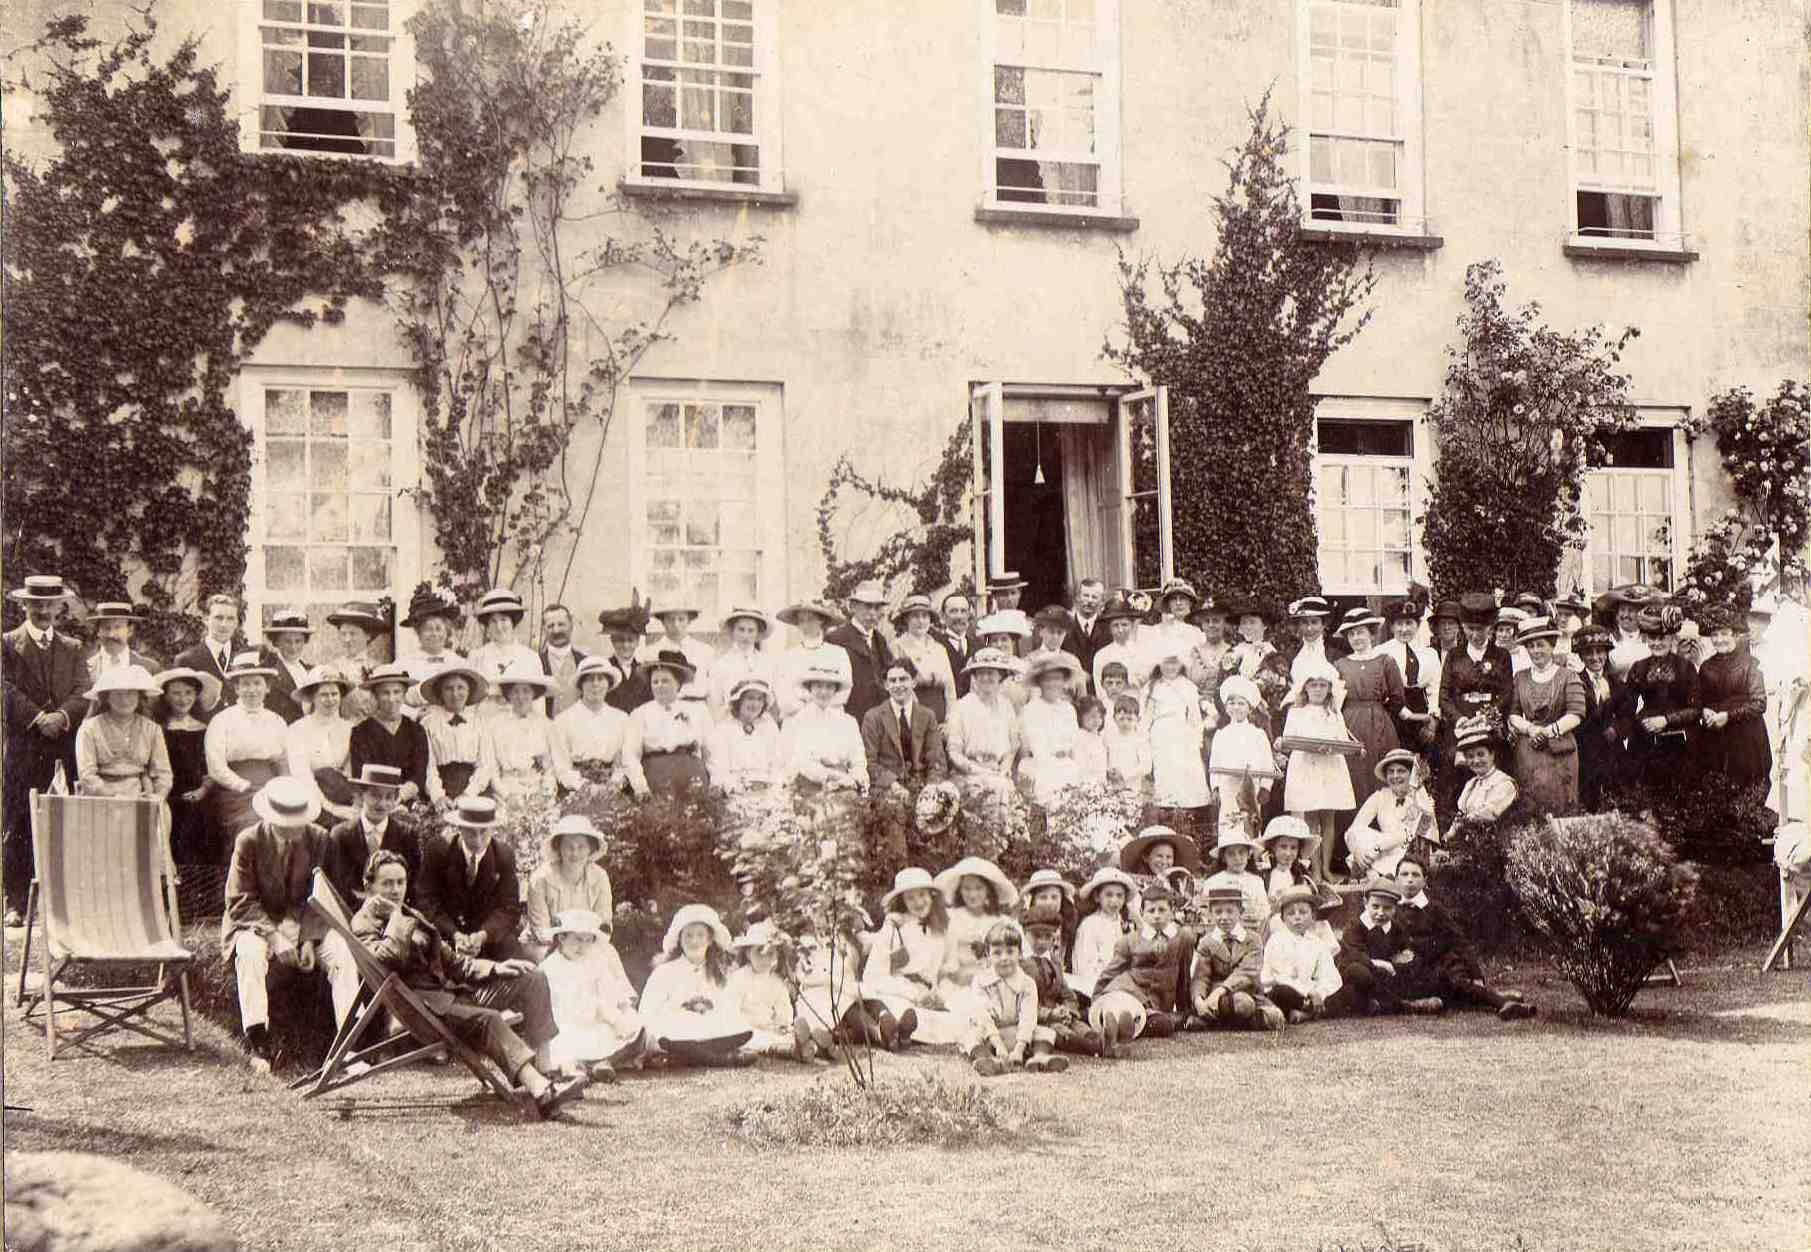 Event at Lifton Rectory. Photo courtesy of Ray Boyd.